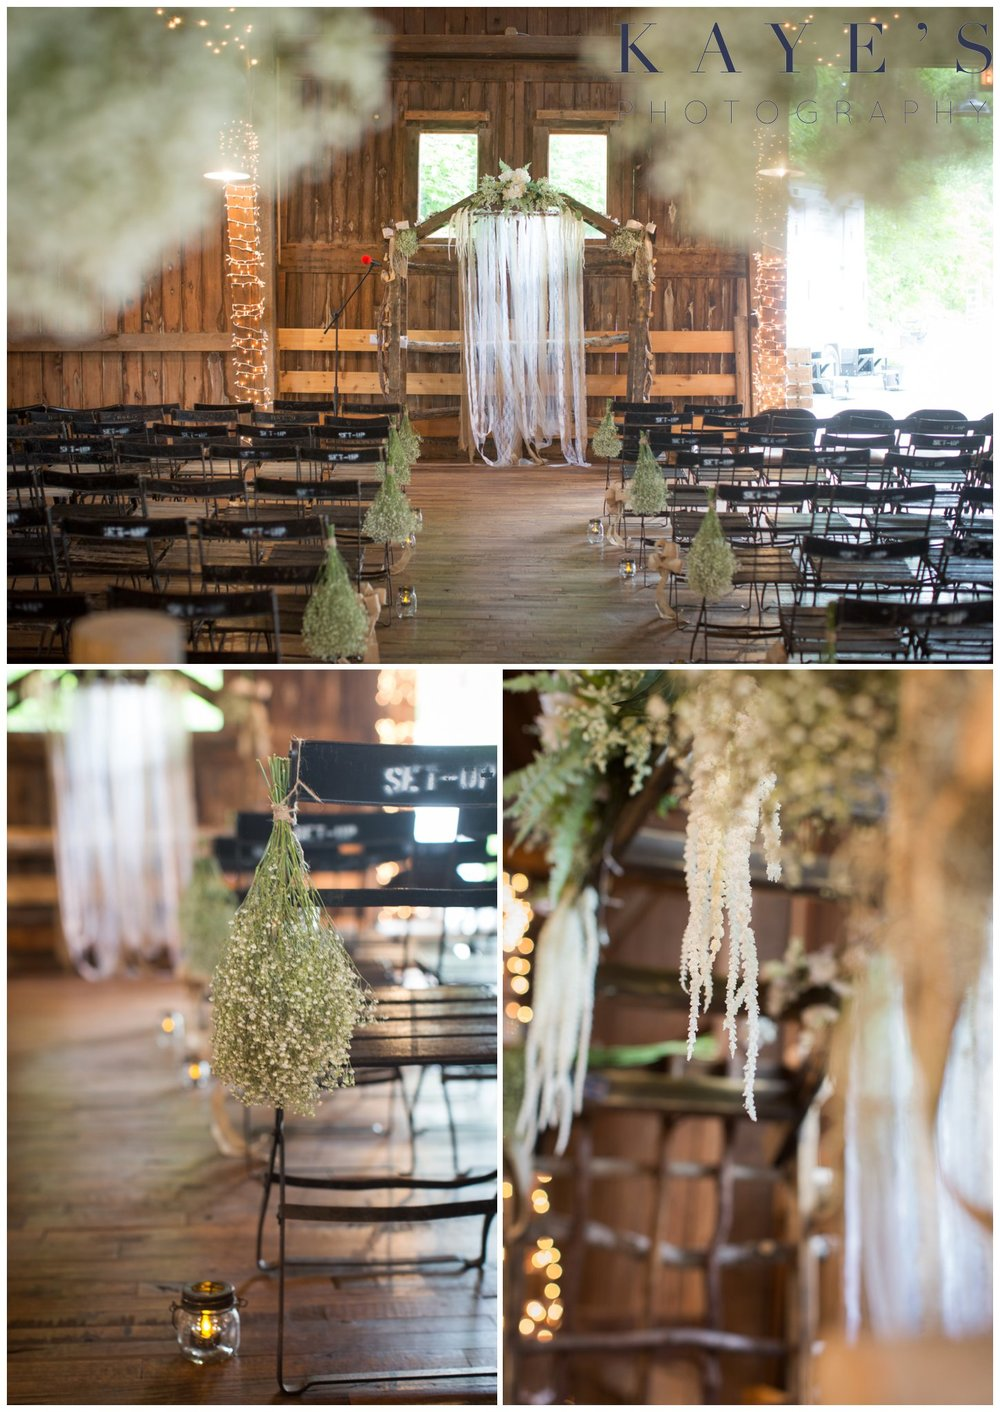 Hudsonville Michigan Wedding Photographer, Hudsonville Michigan Wedding Photography, The Old Wooden Barn Hudsonville Michigan Wedding photography, ceremony details, altar details, barn wedding, wedding decorations